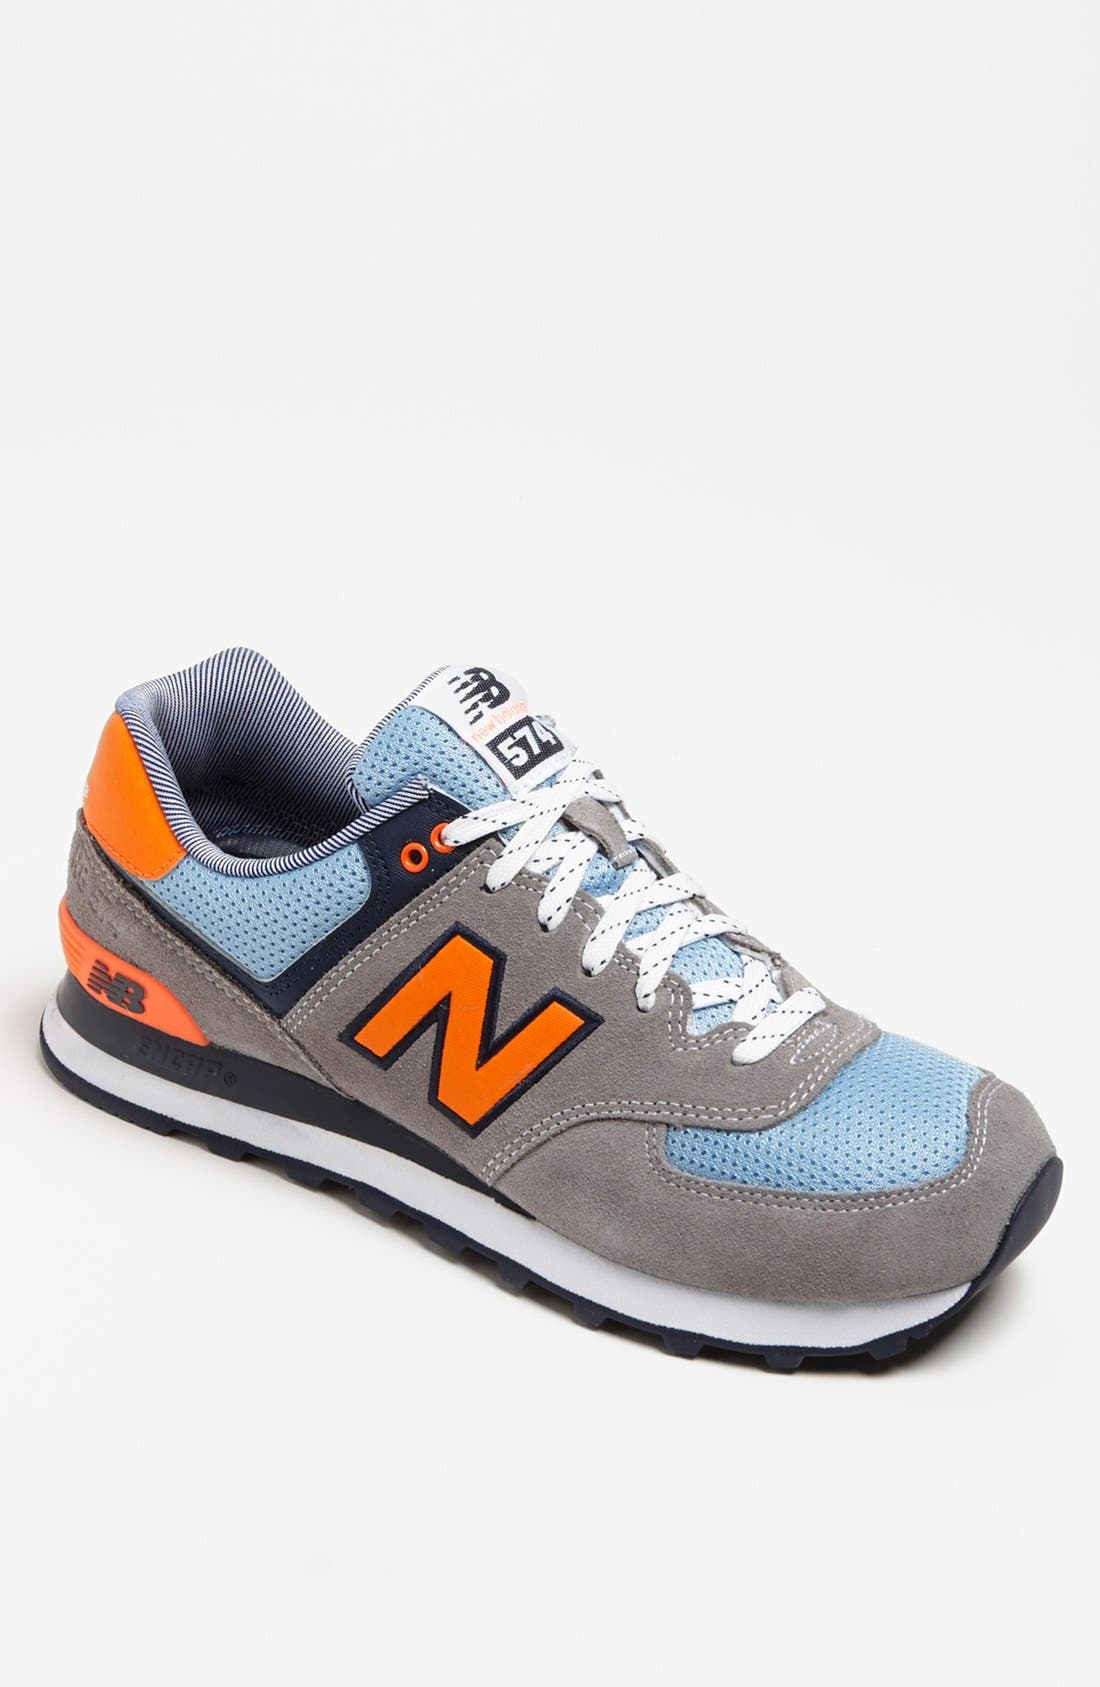 Main Image - New Balance '574 Yacht Club' Sneaker (Men)